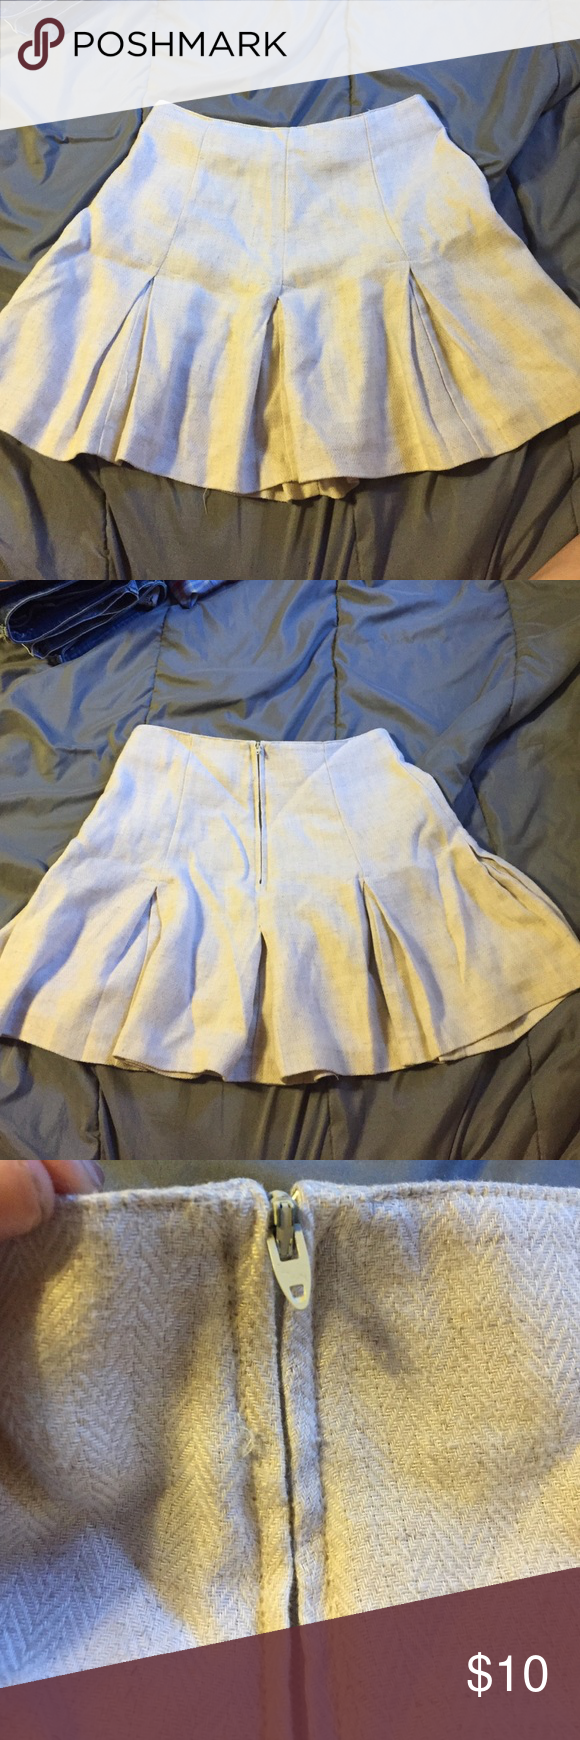 (SOLD) Size 5/6 Cristina pleated skirt Cute skirt. Excellent condition Cristina Skirts Circle & Skater